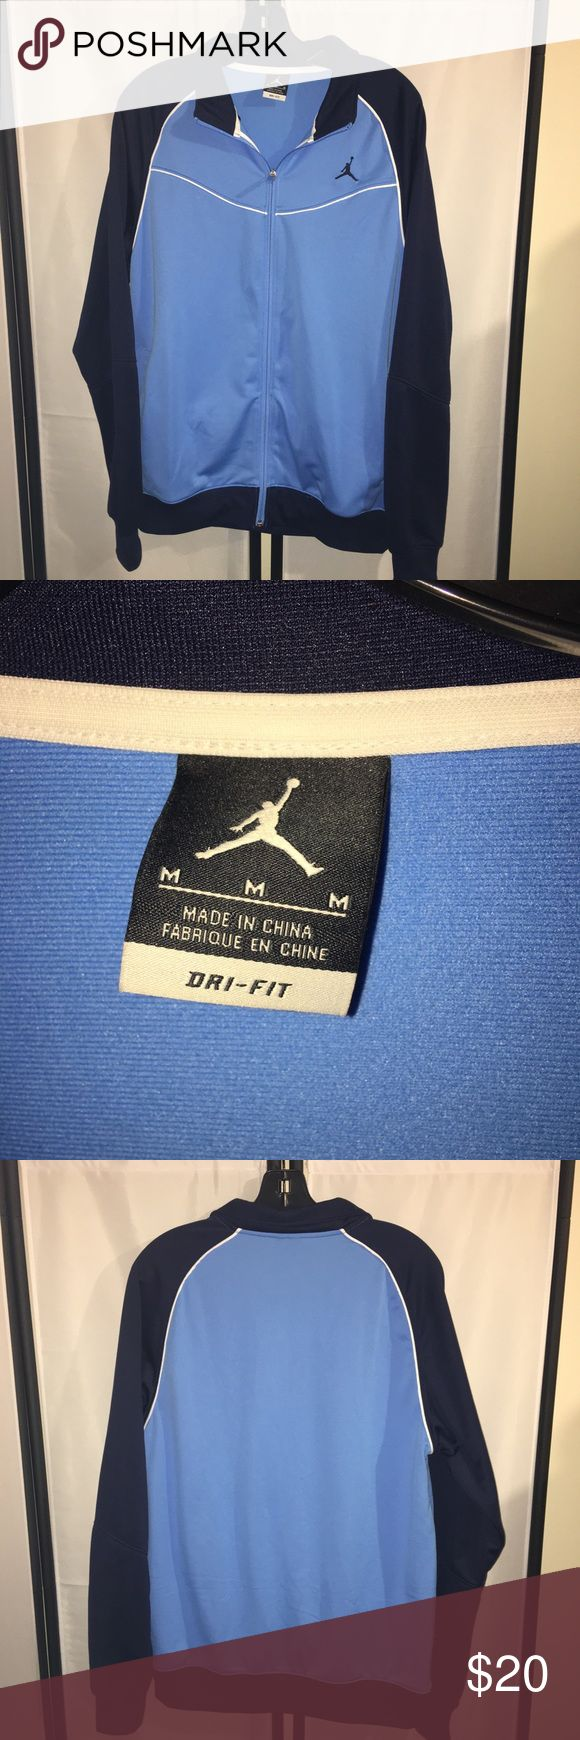 Air Jordan Jacket Zip Sweatshirt, Drifit sz M great condition but gently used. Maybe worn a couple times! Price Firm Air Jordan Jackets & Coats